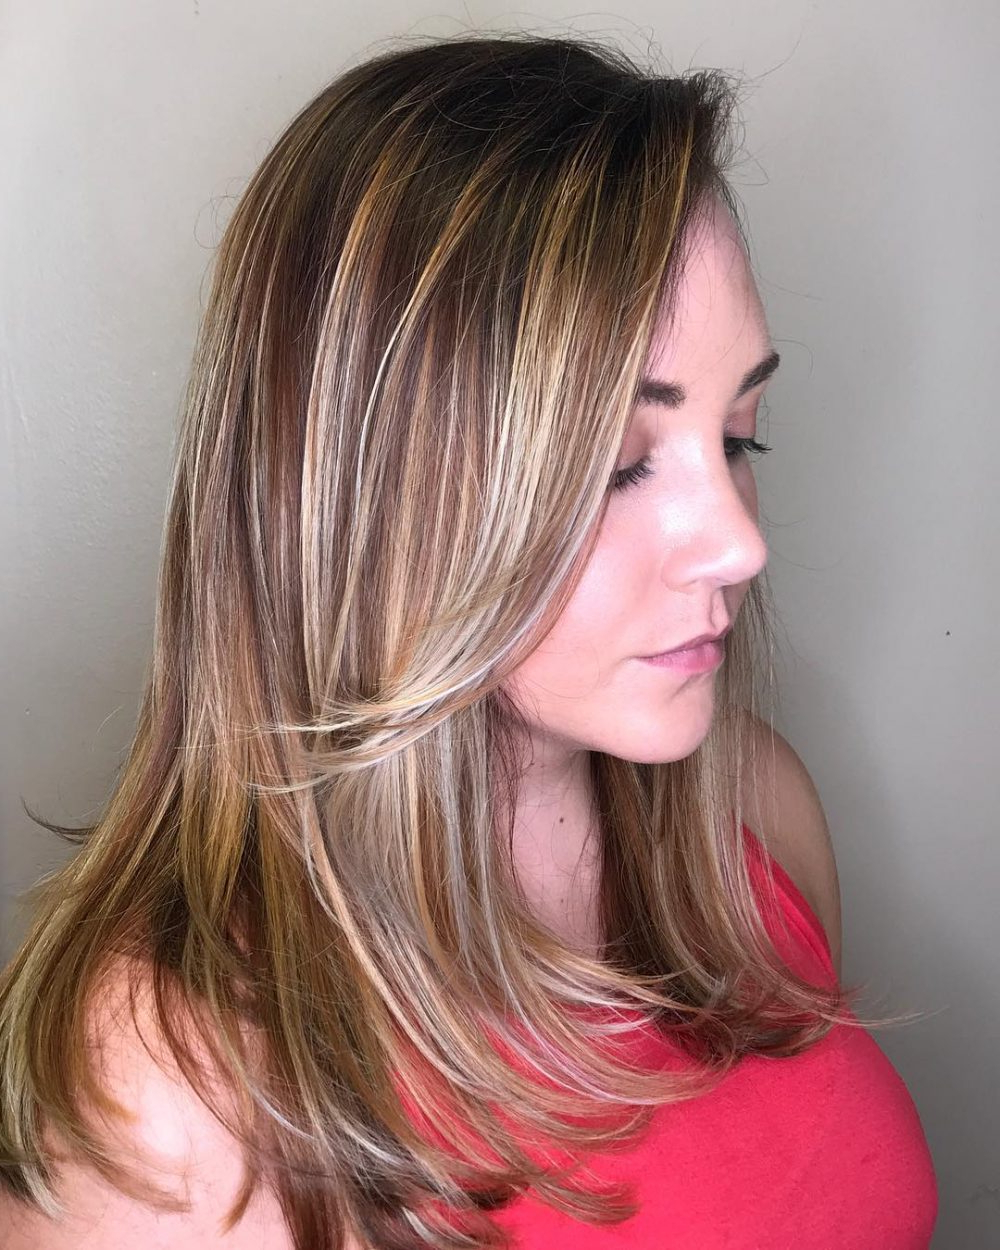 19 Cutest Side Bangs Hairstyle Ideas For 2018 Pertaining To Short Haircuts Side Swept Bangs (View 2 of 25)